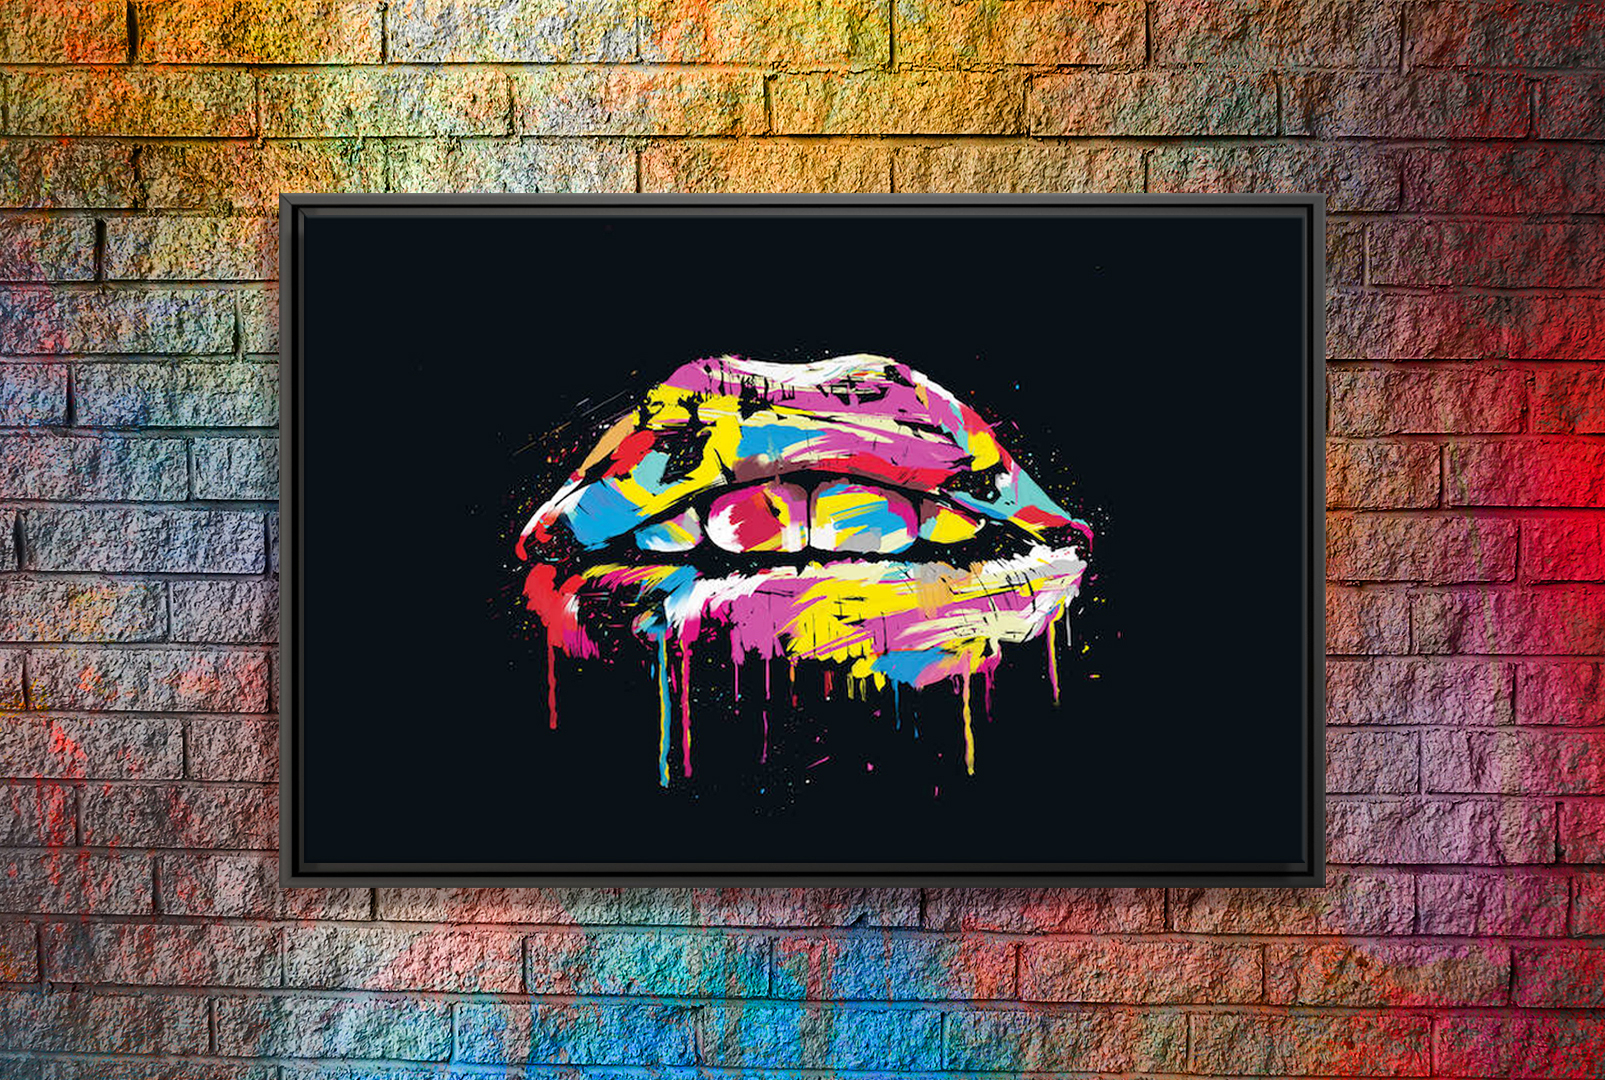 painted mouth on black backdrop with purple, blue, yellow, white, and red paint swipes across teeth and lips